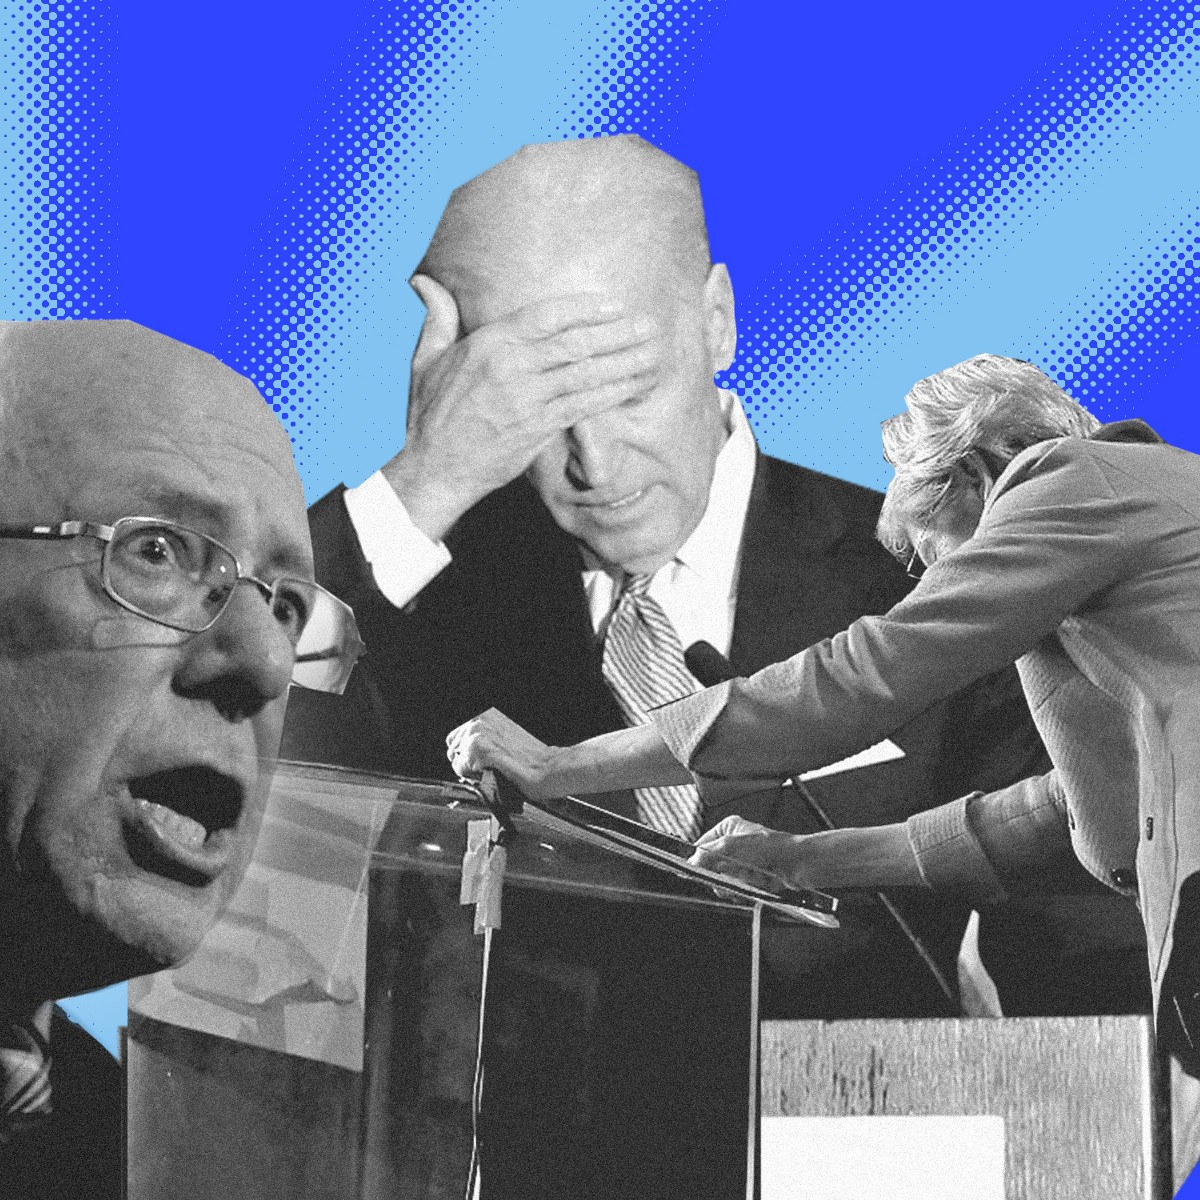 The Real Democratic Debate Should Be Over How to Win Moderates